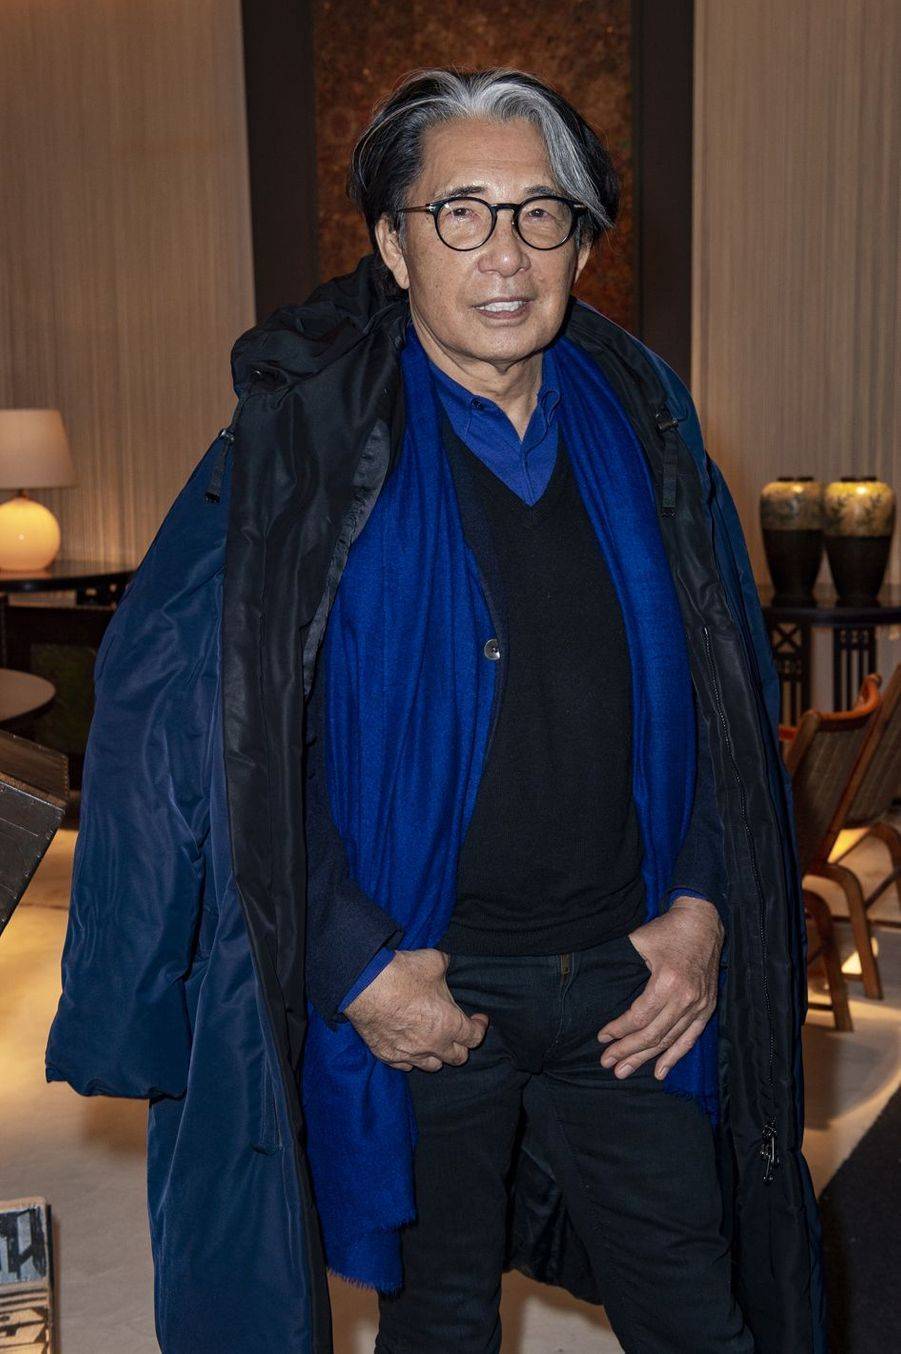 Kenzo Takada lors du salon PAD (Paris Art Design) à Paris le 3 avril 2019.